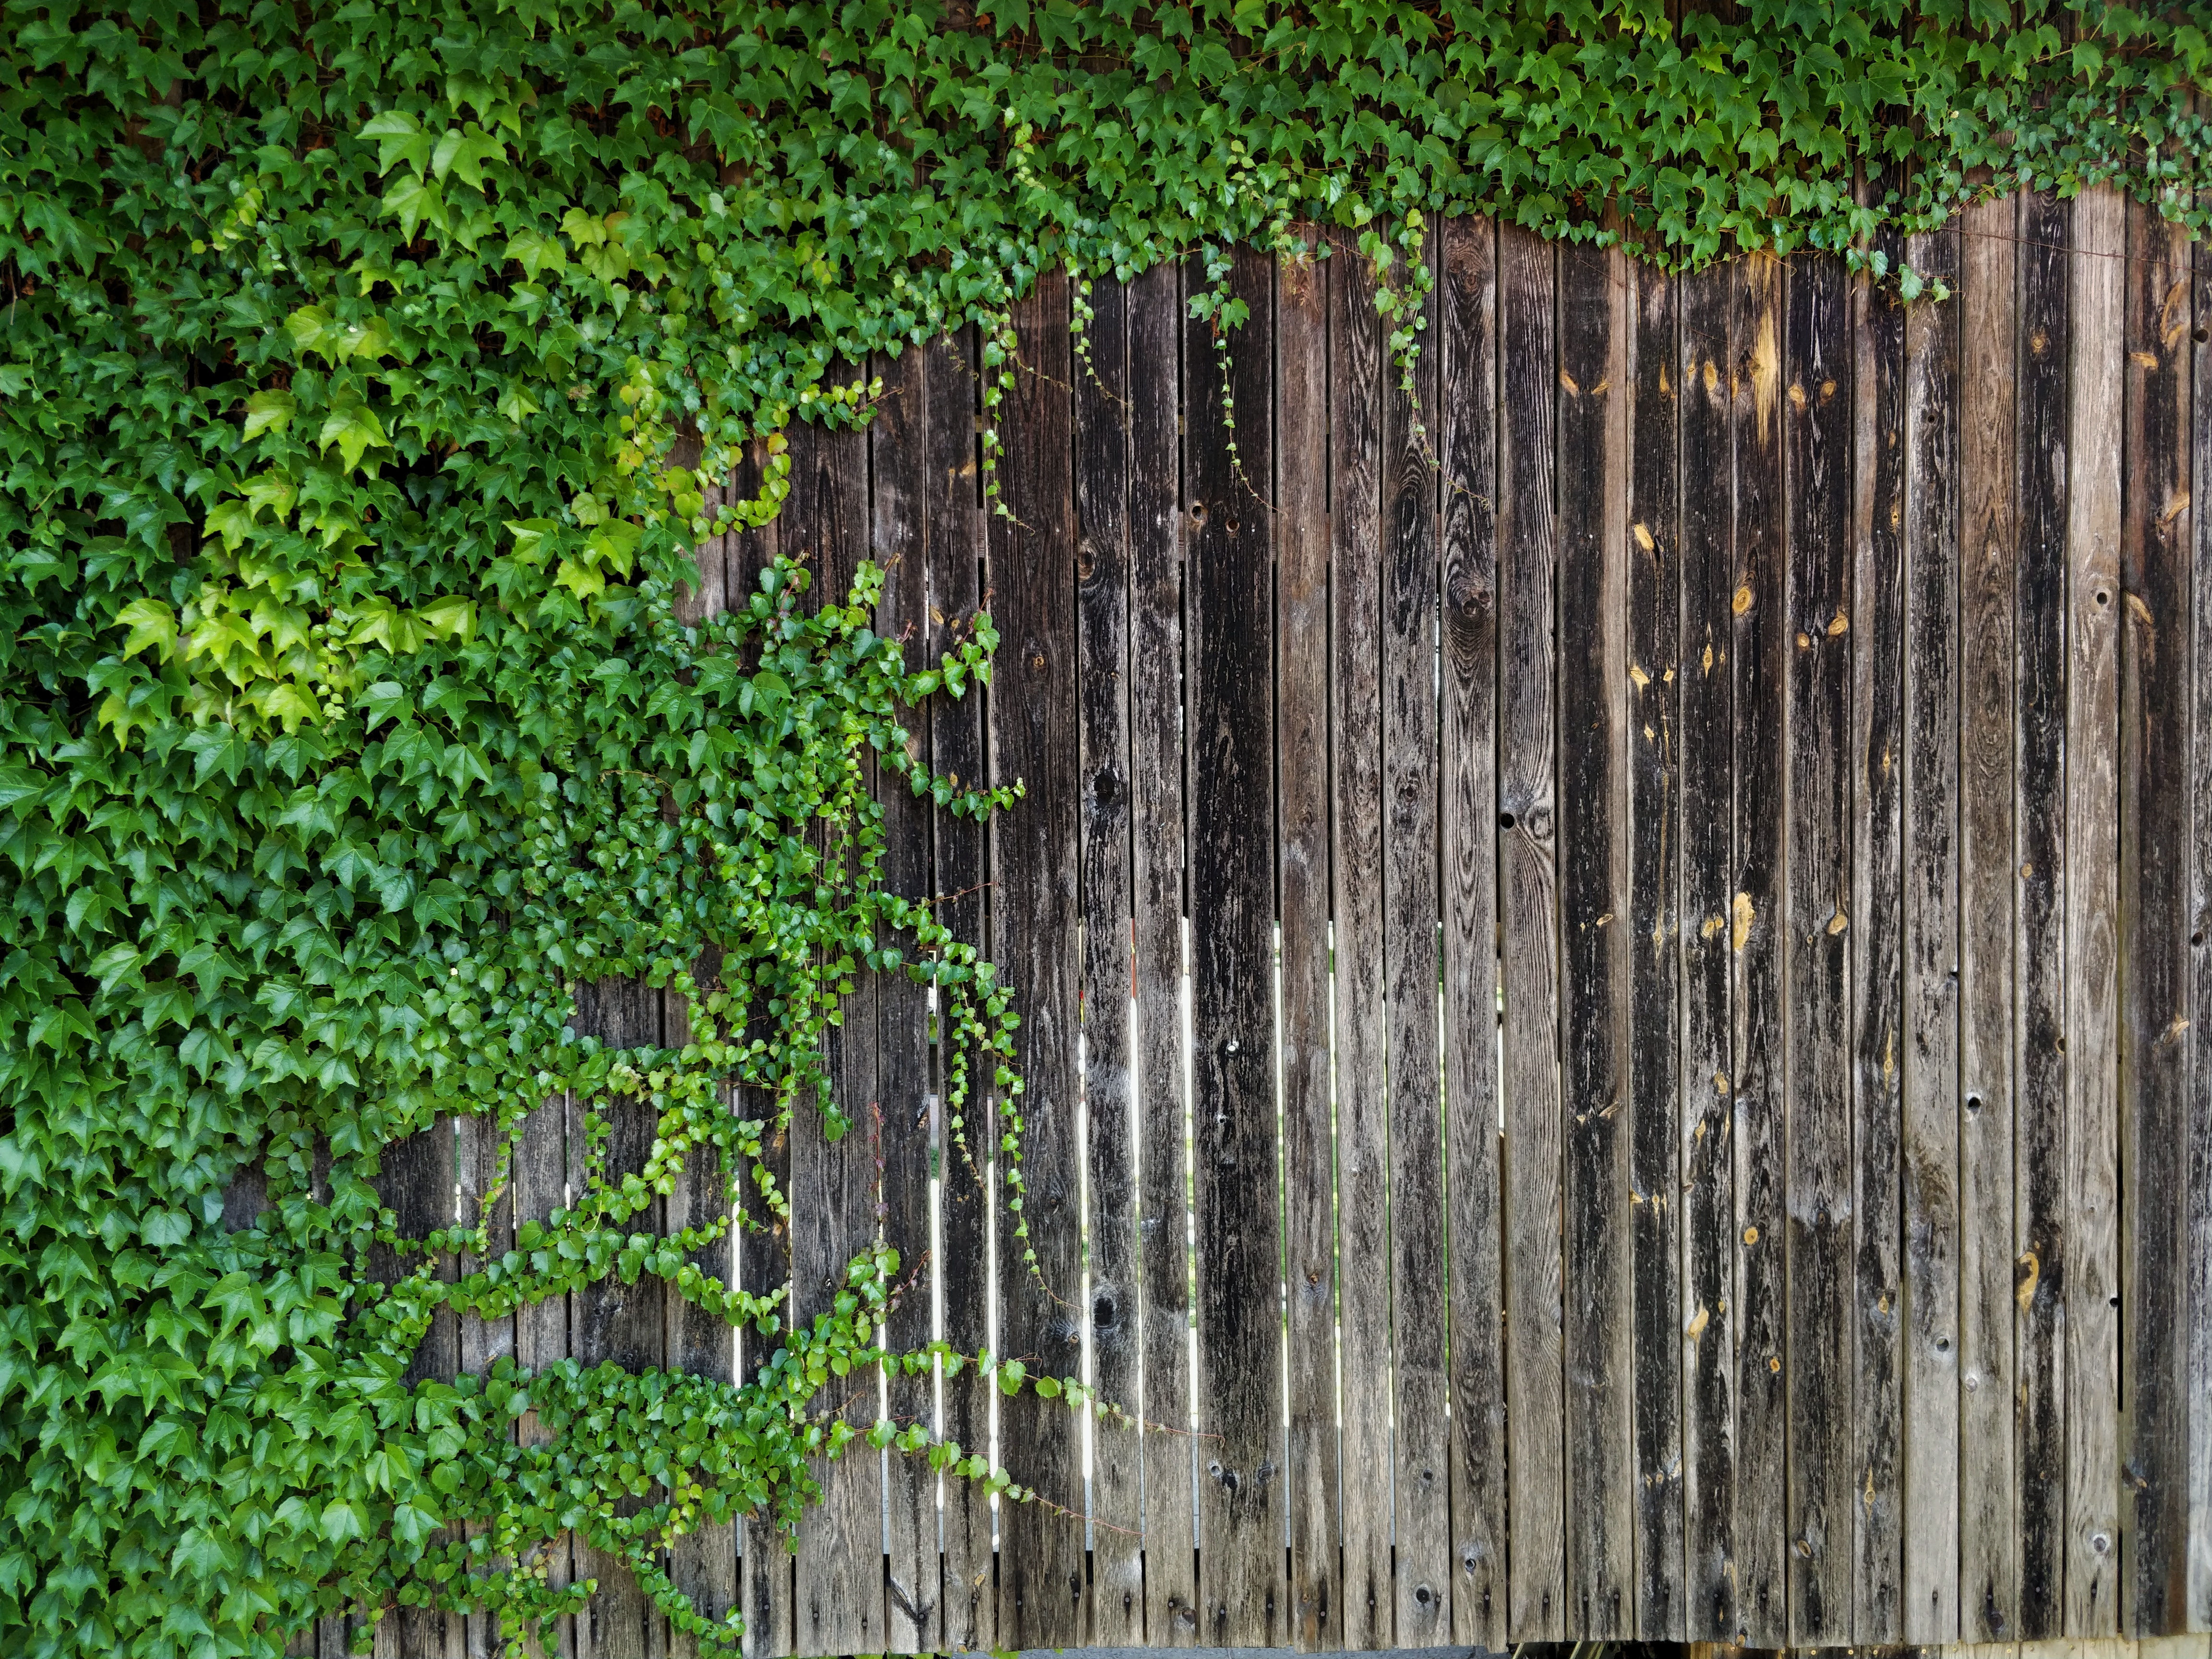 Wood With Ivy 4k Ultra Hd Wallpaper Background Image